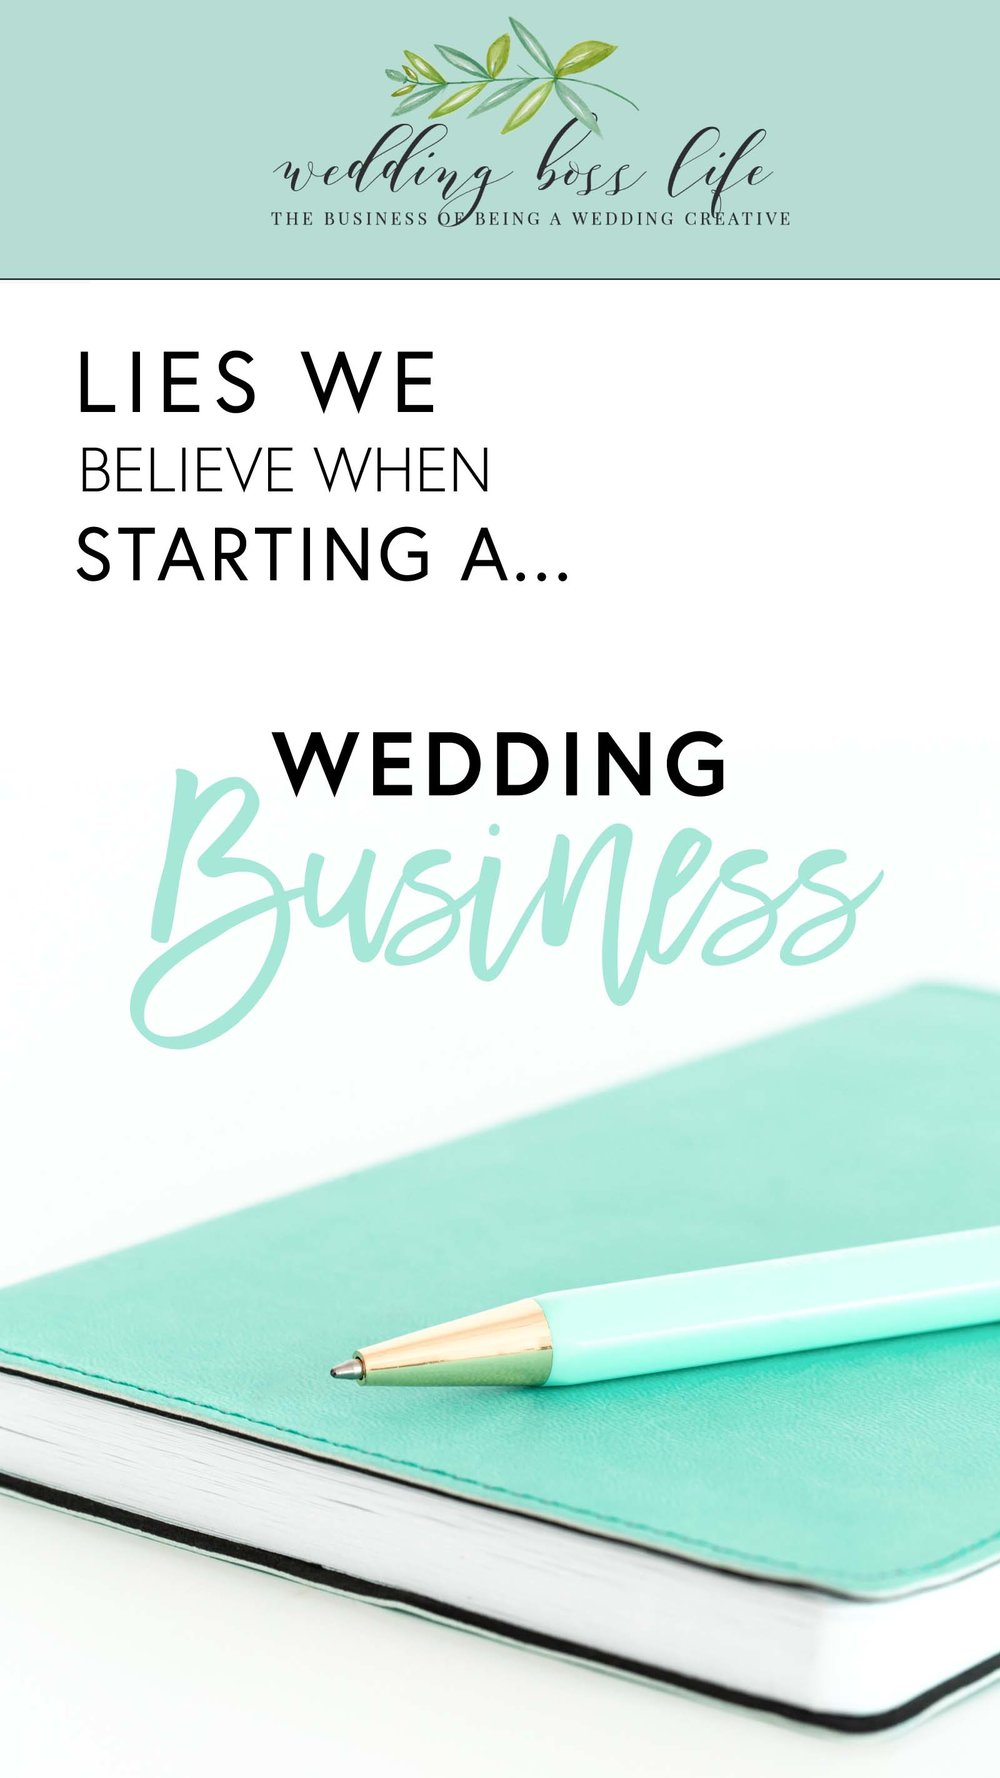 3 Lies We Believe When Starting a Wedding Business